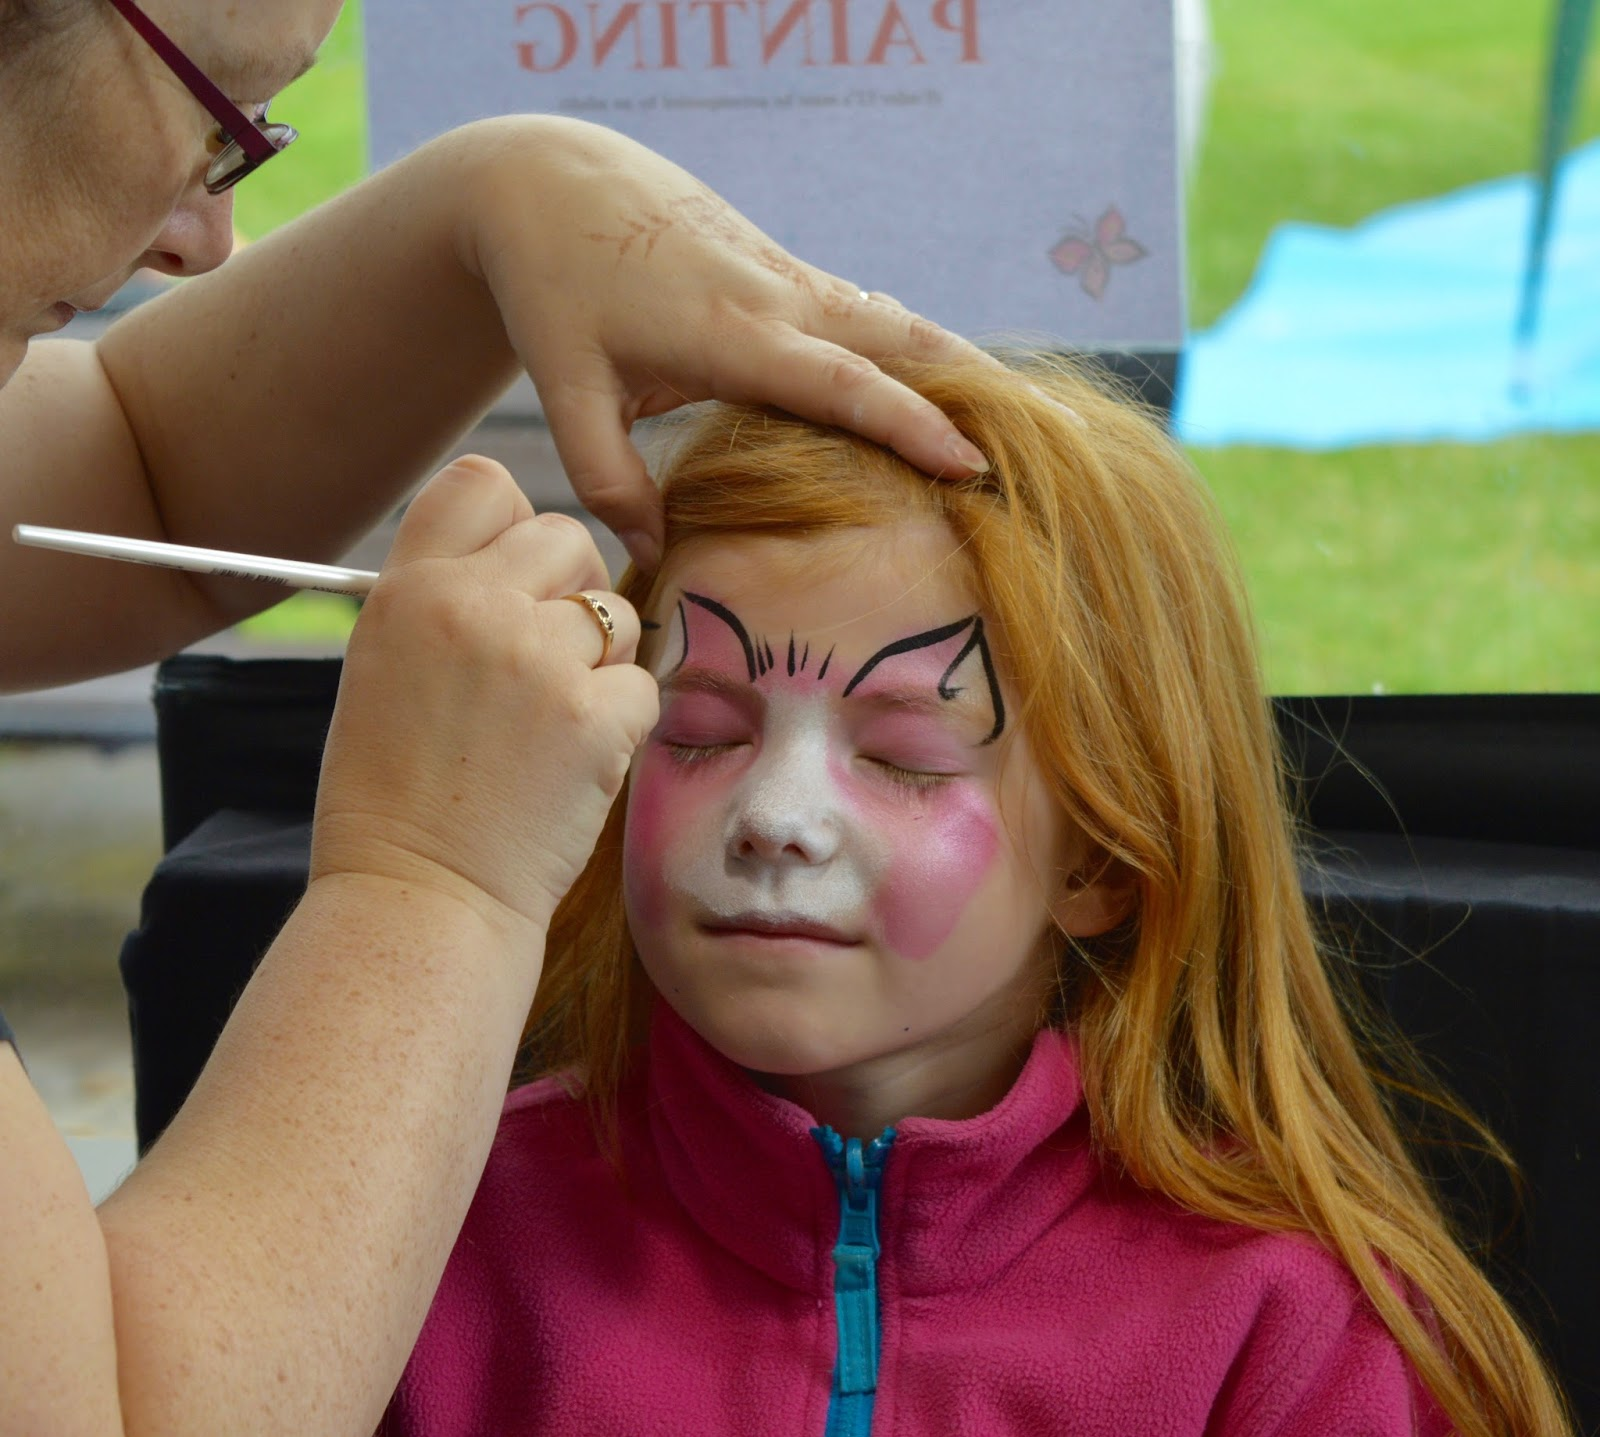 Pirates & Princesses Day at Manor Walks - FREE Face Painting by Izzy's Face Painting